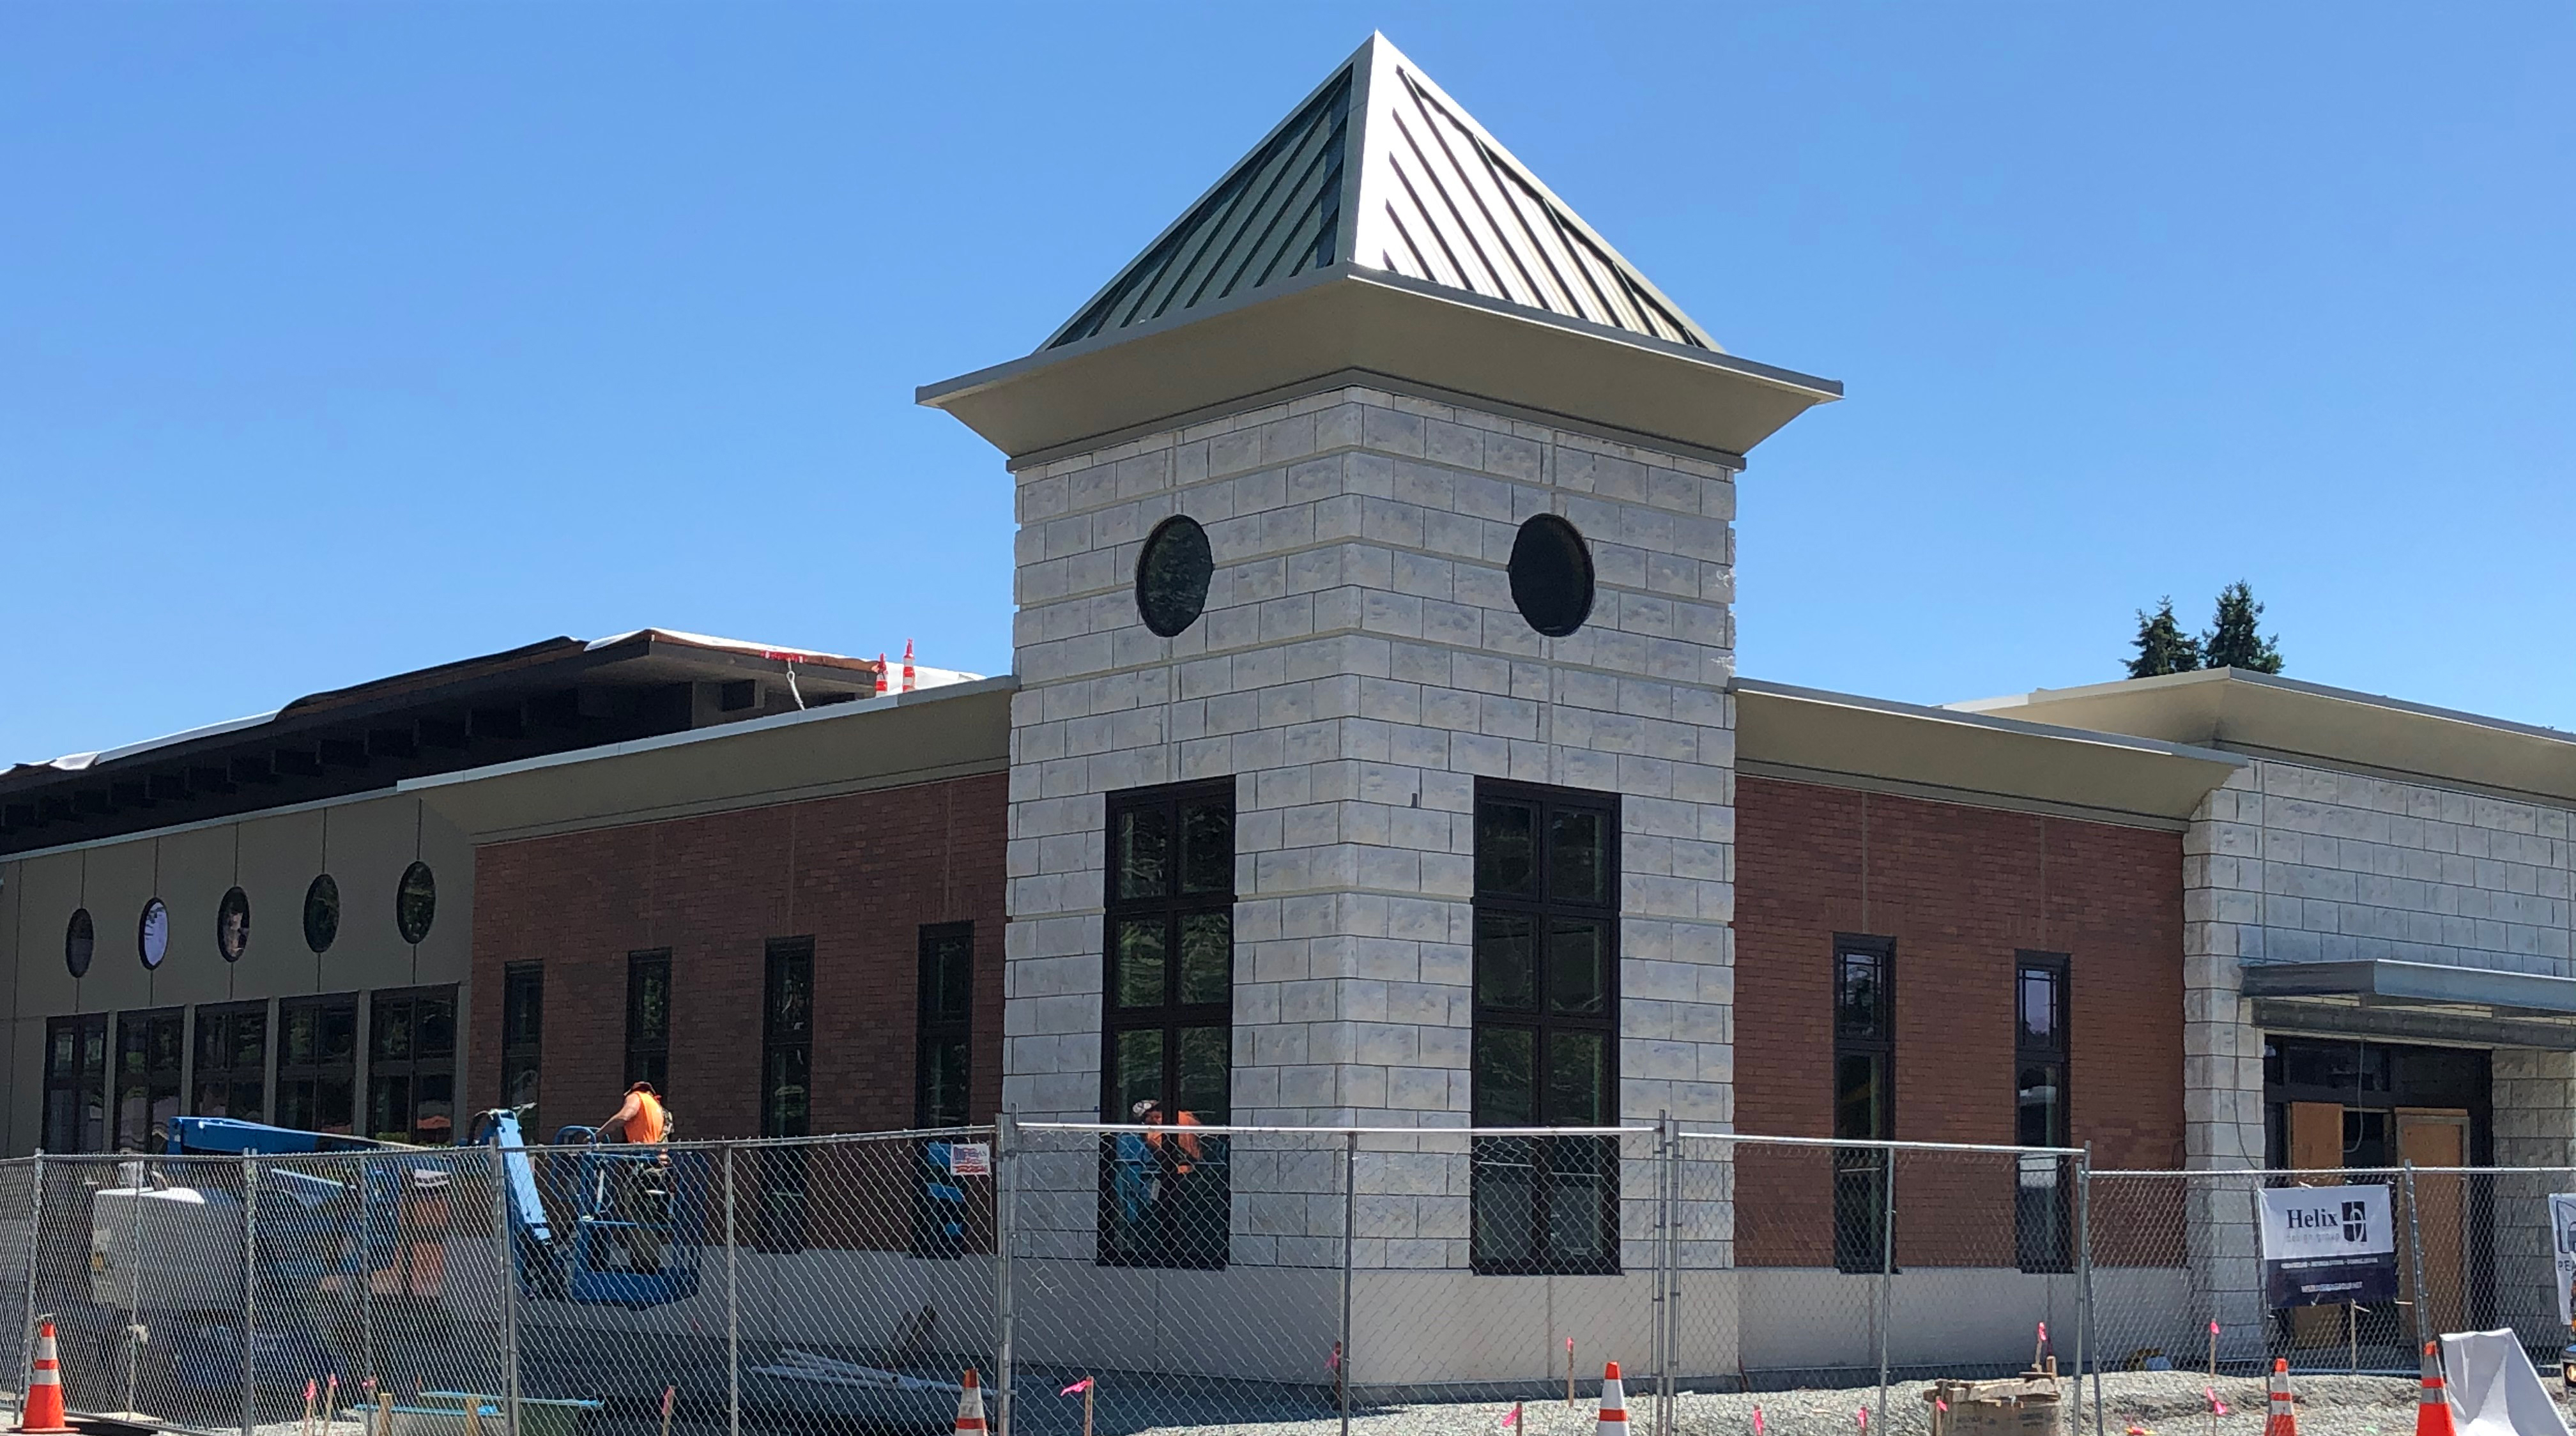 Orting City Hall in Orting, Washington Teaser Image